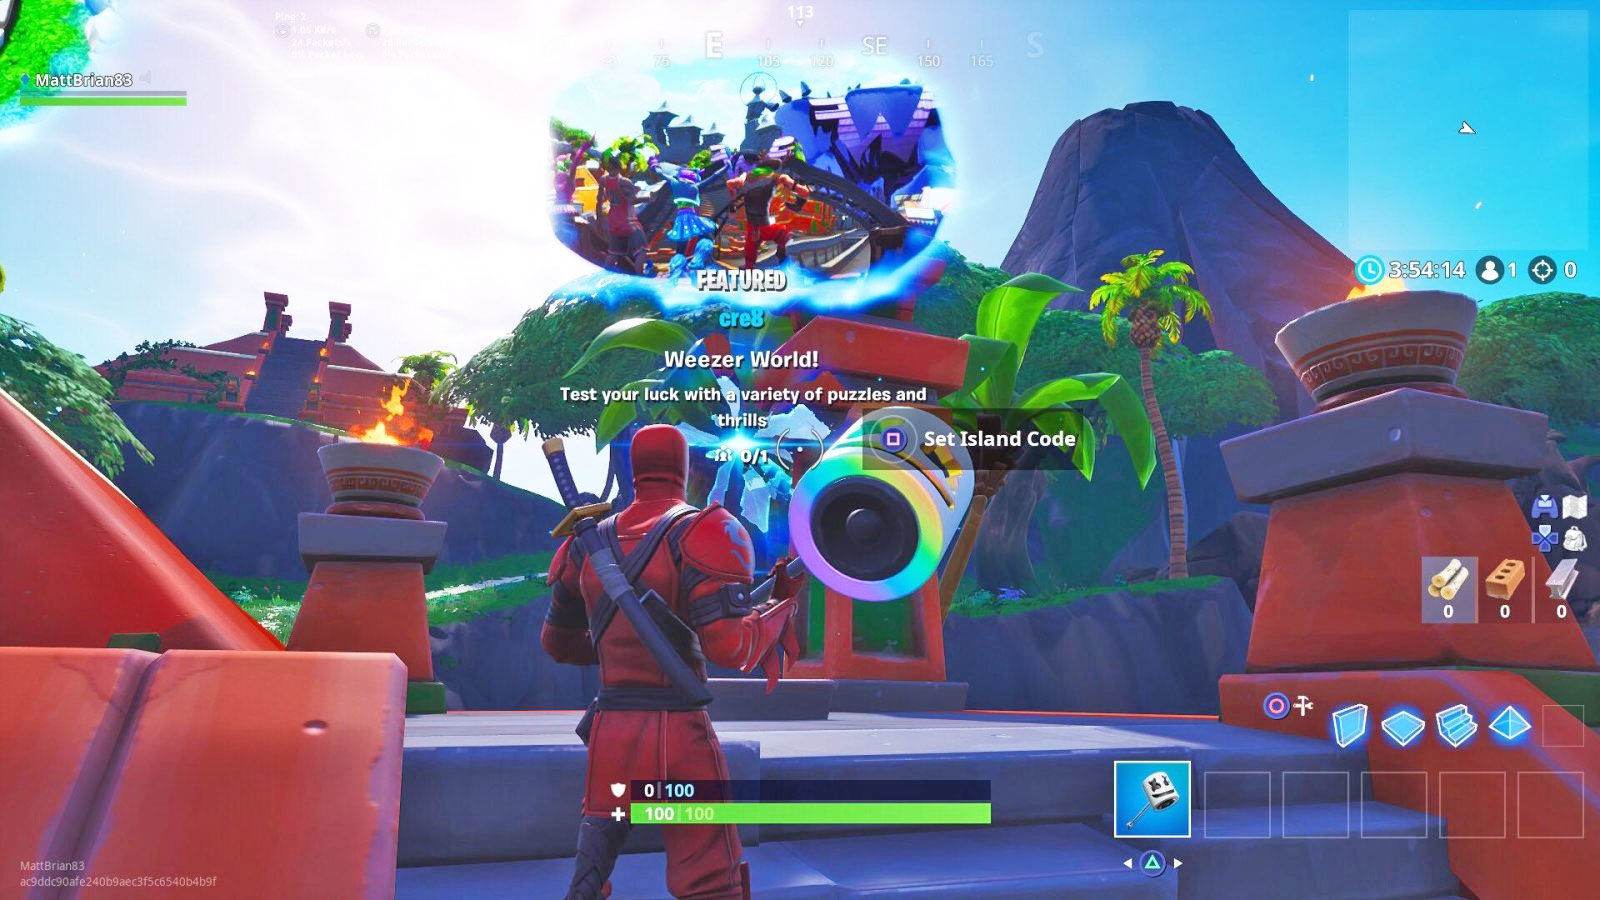 Weezer made an island in 'Fortnite' to promote its new album | DeviceDaily.com